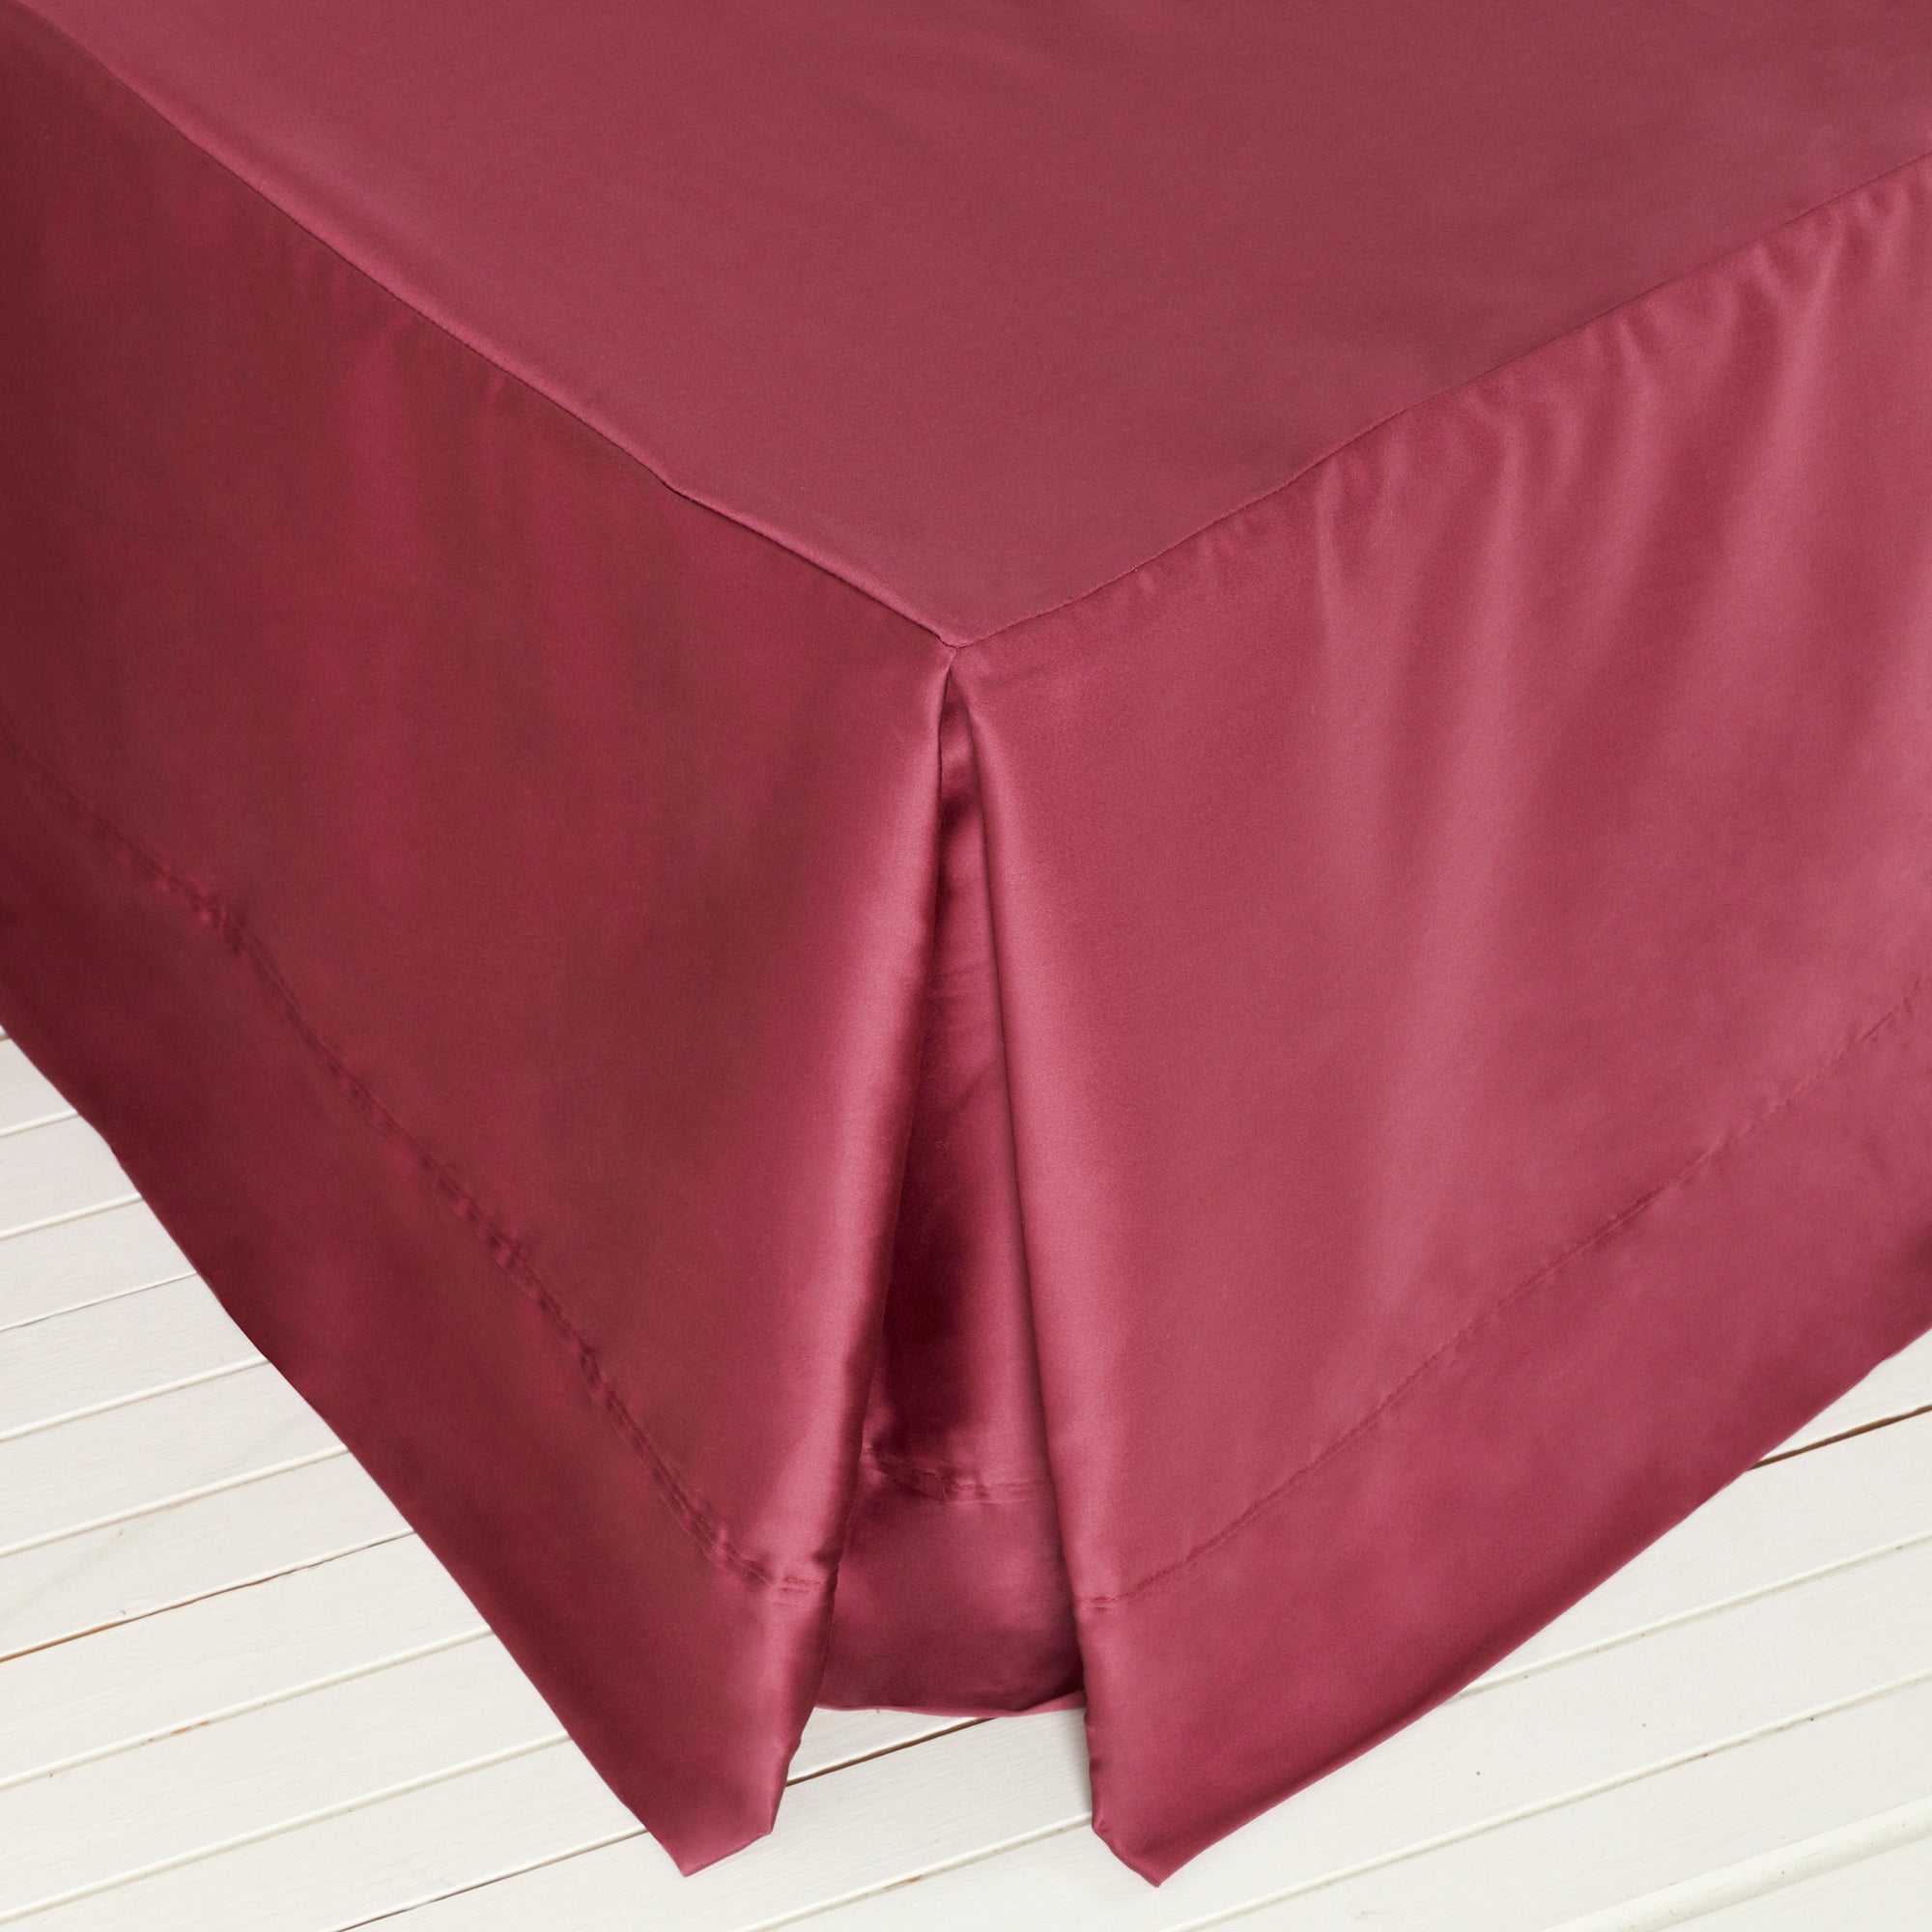 Dorma 350 Thread Count Red Plain Dye Collection Valance